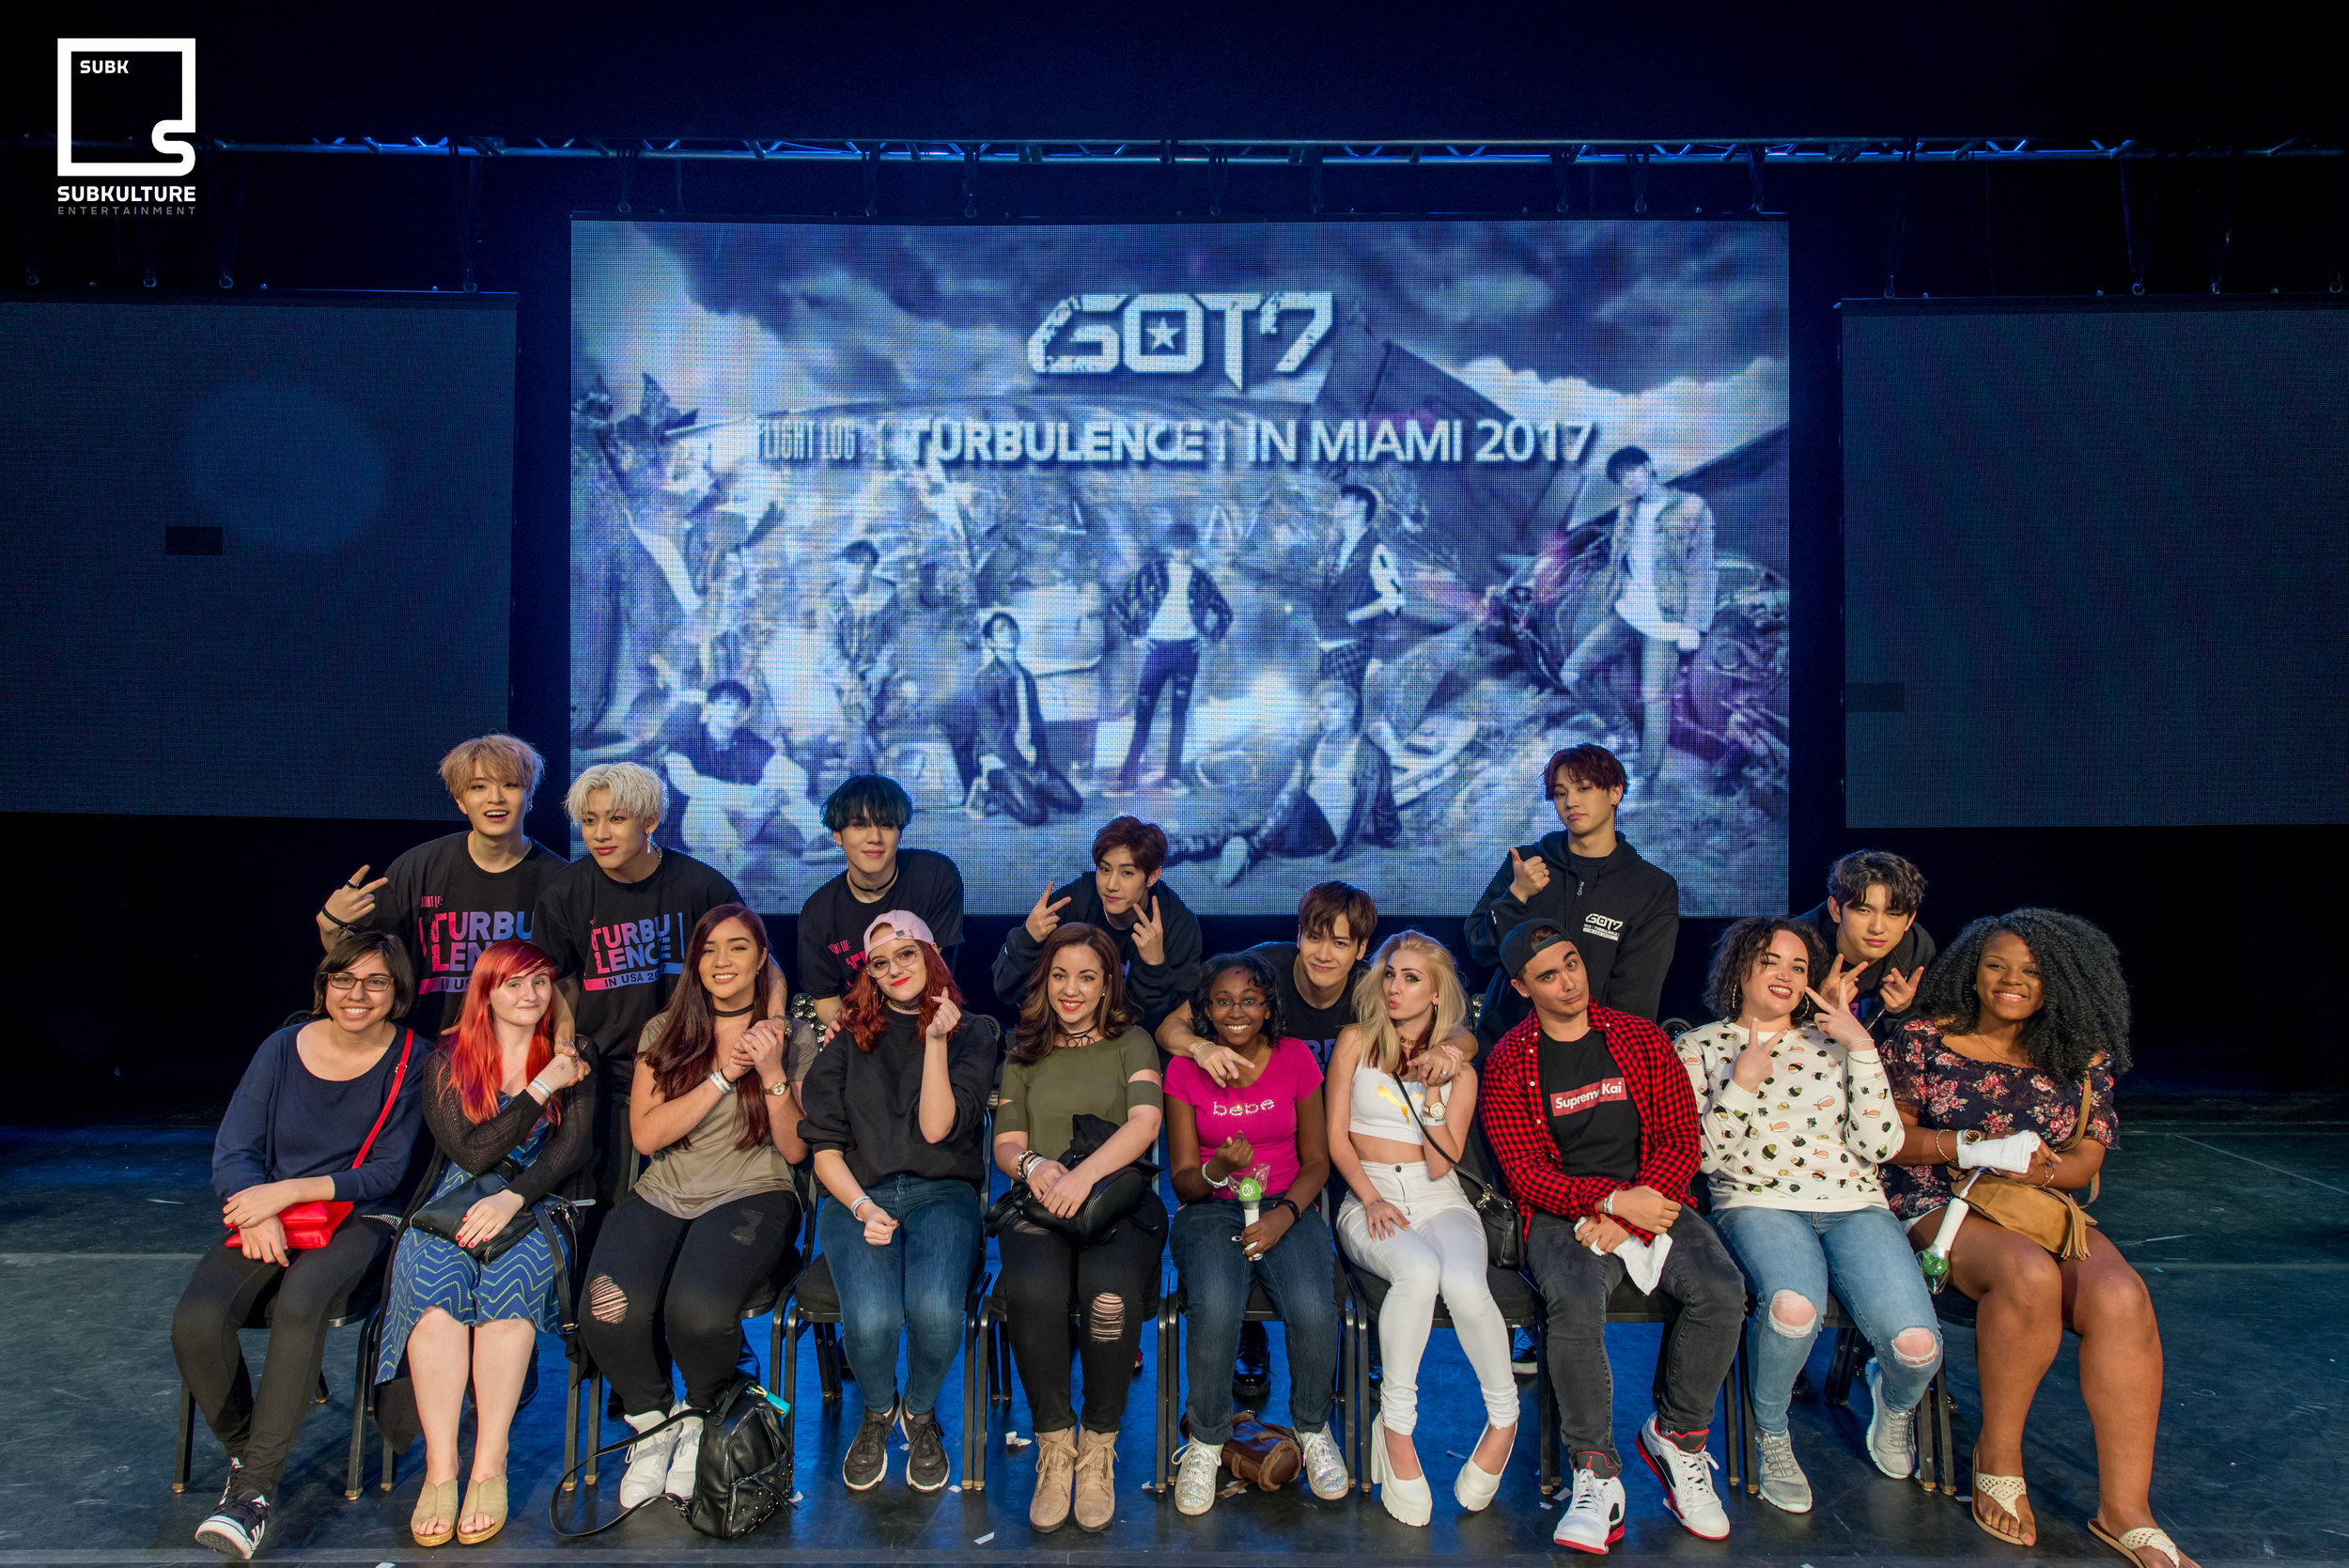 GOT7 Fan Photos Miami -1154 copy.jpg